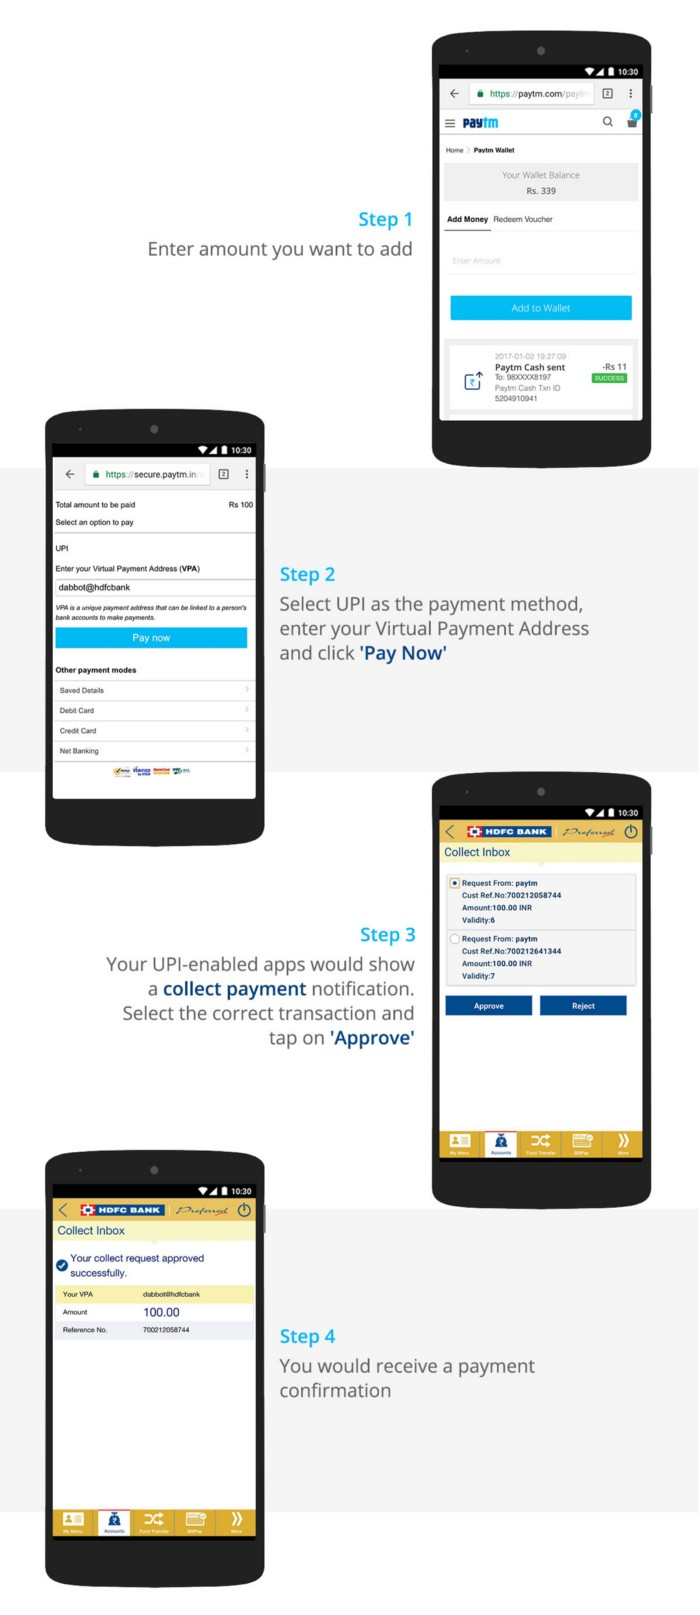 Adding money to your Paytm Wallet with UPI - Paytm Blog